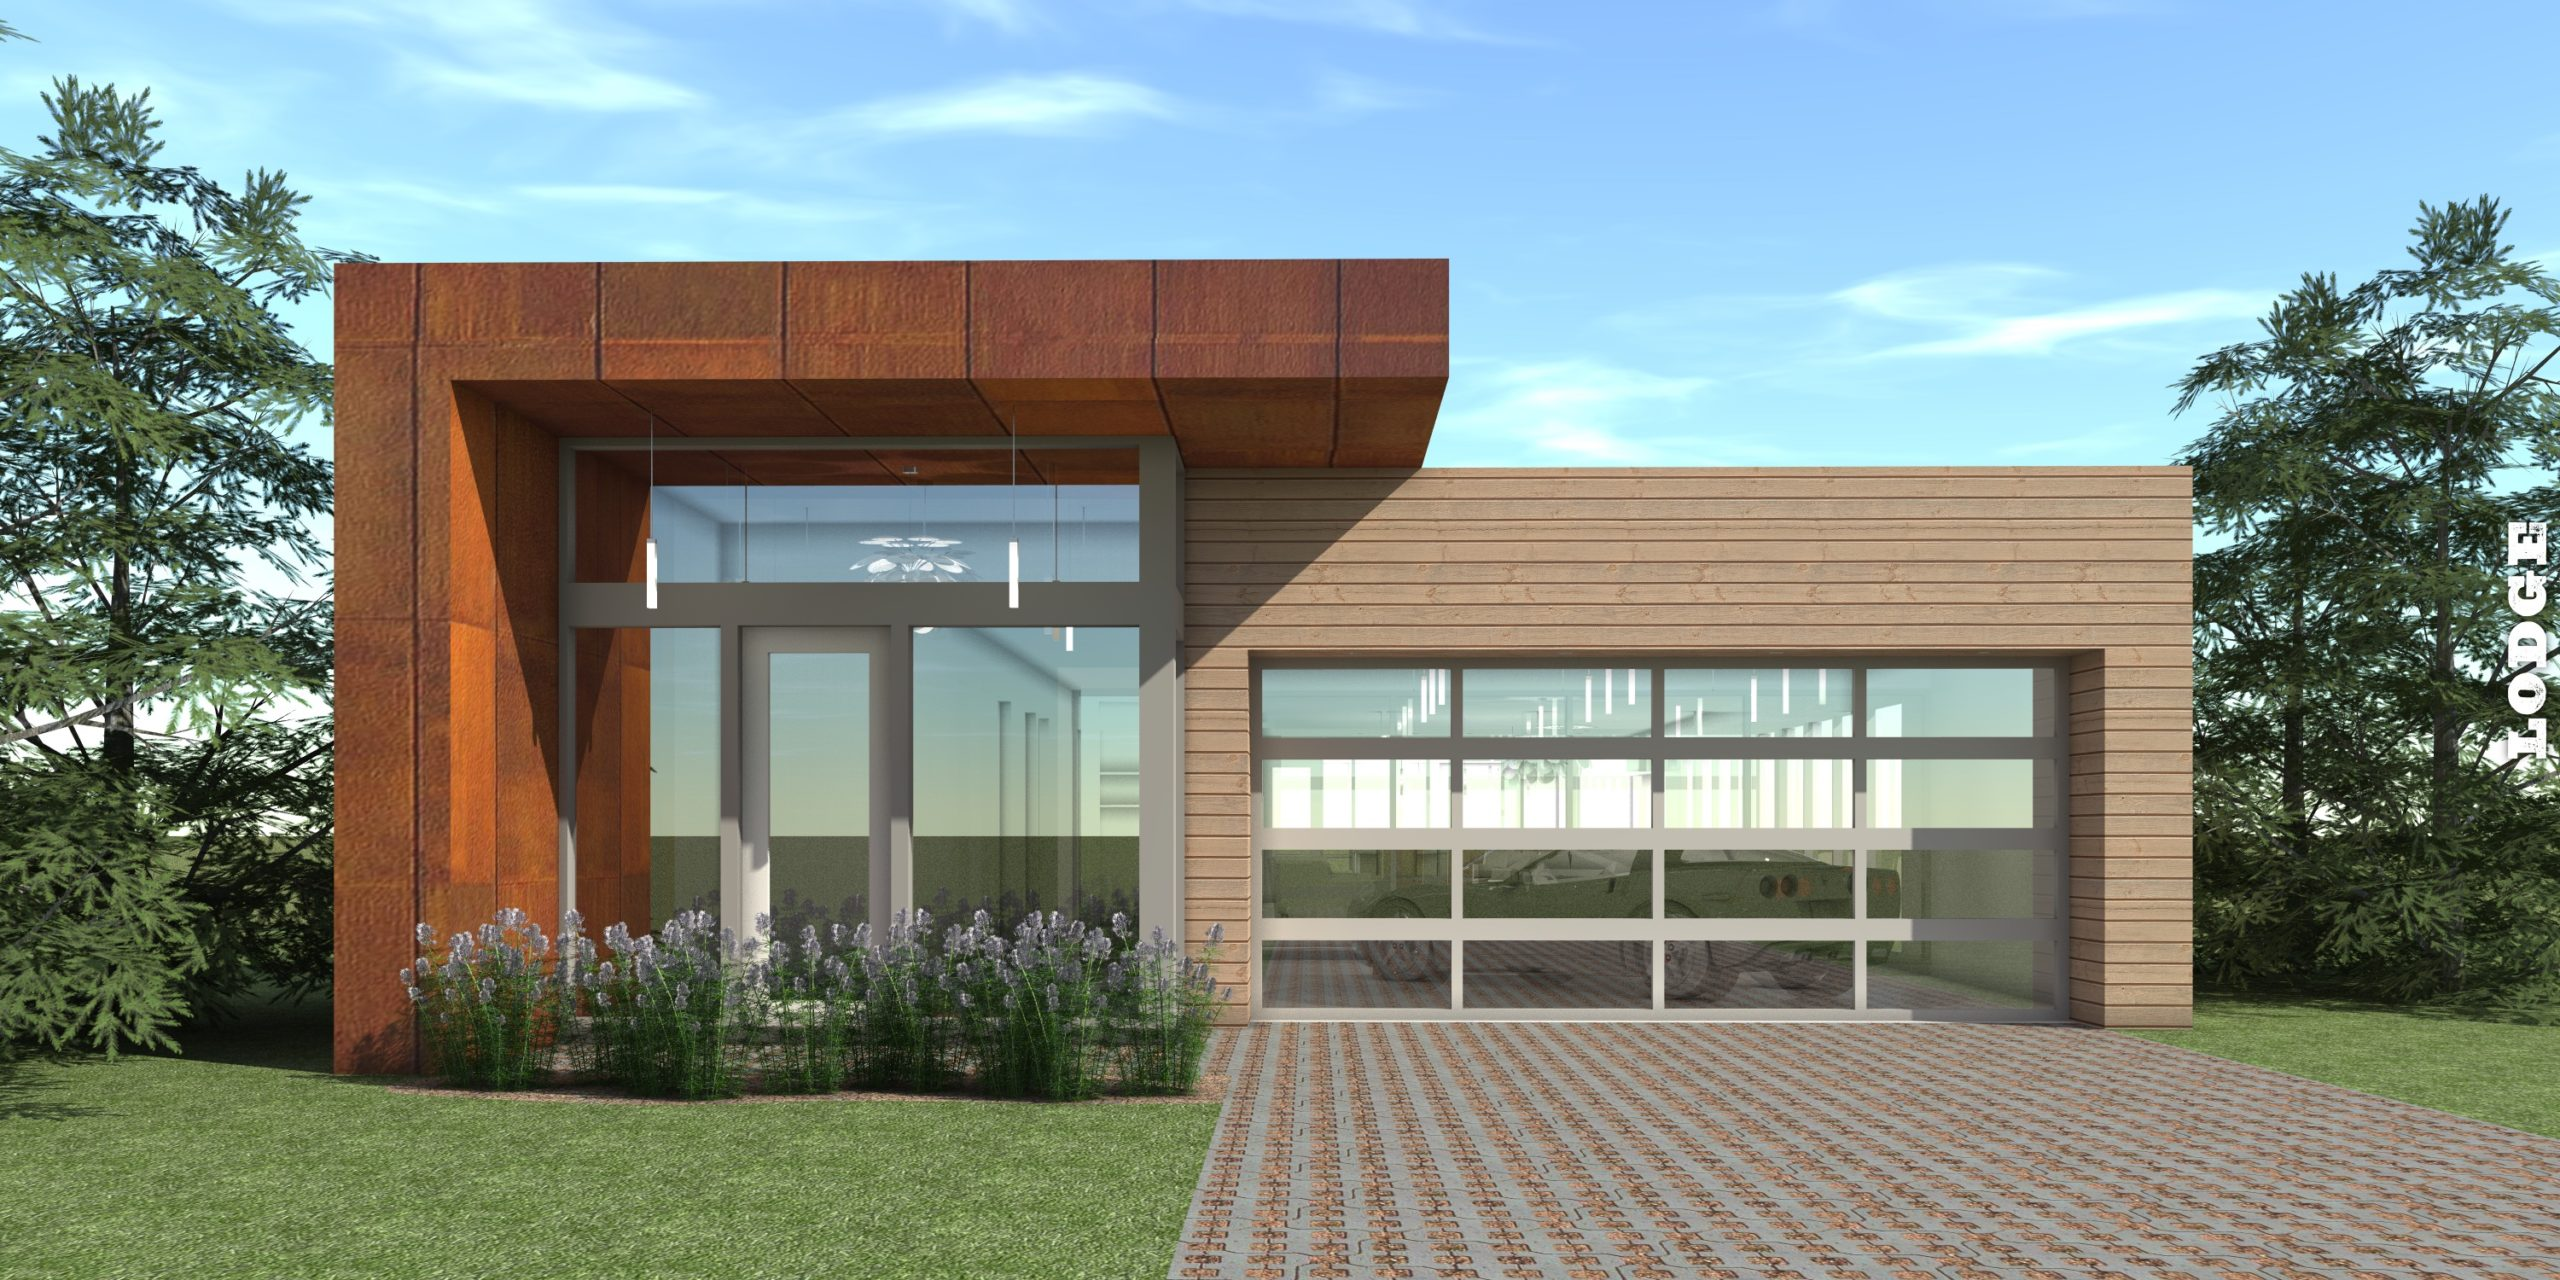 Narrow Modern with Car Showroom. 4 Bedrooms. Tyree House Plans.